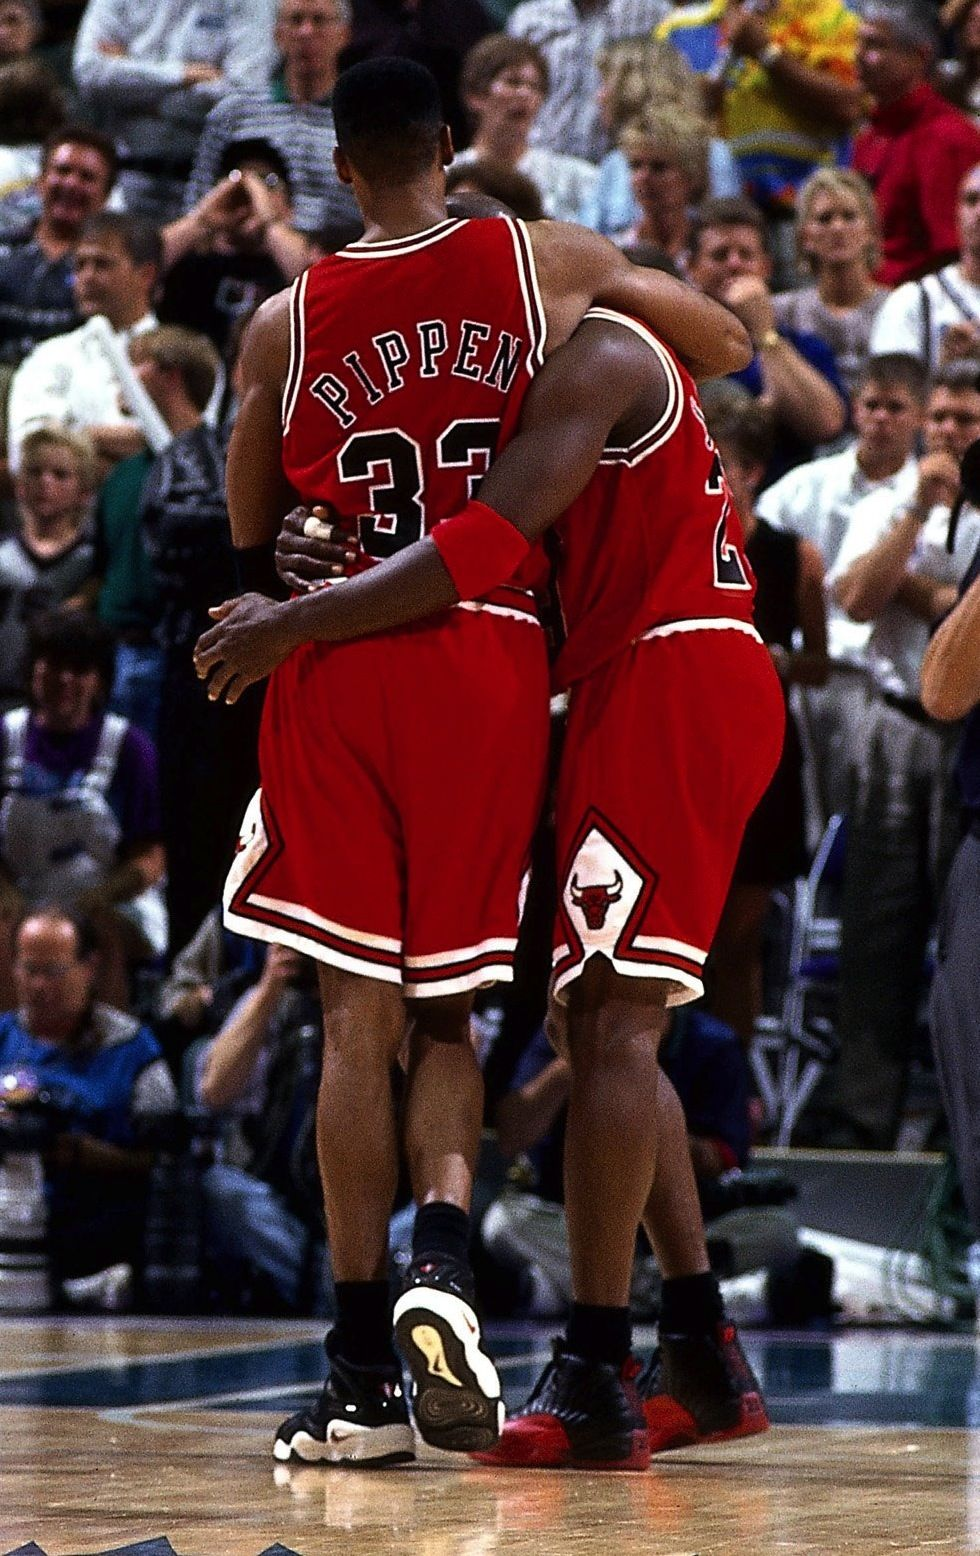 96d7ecd8740 ... Jordan Flu Game Shoes Sell For Over 100,000 Michael Jordan wearing  after jersey ...